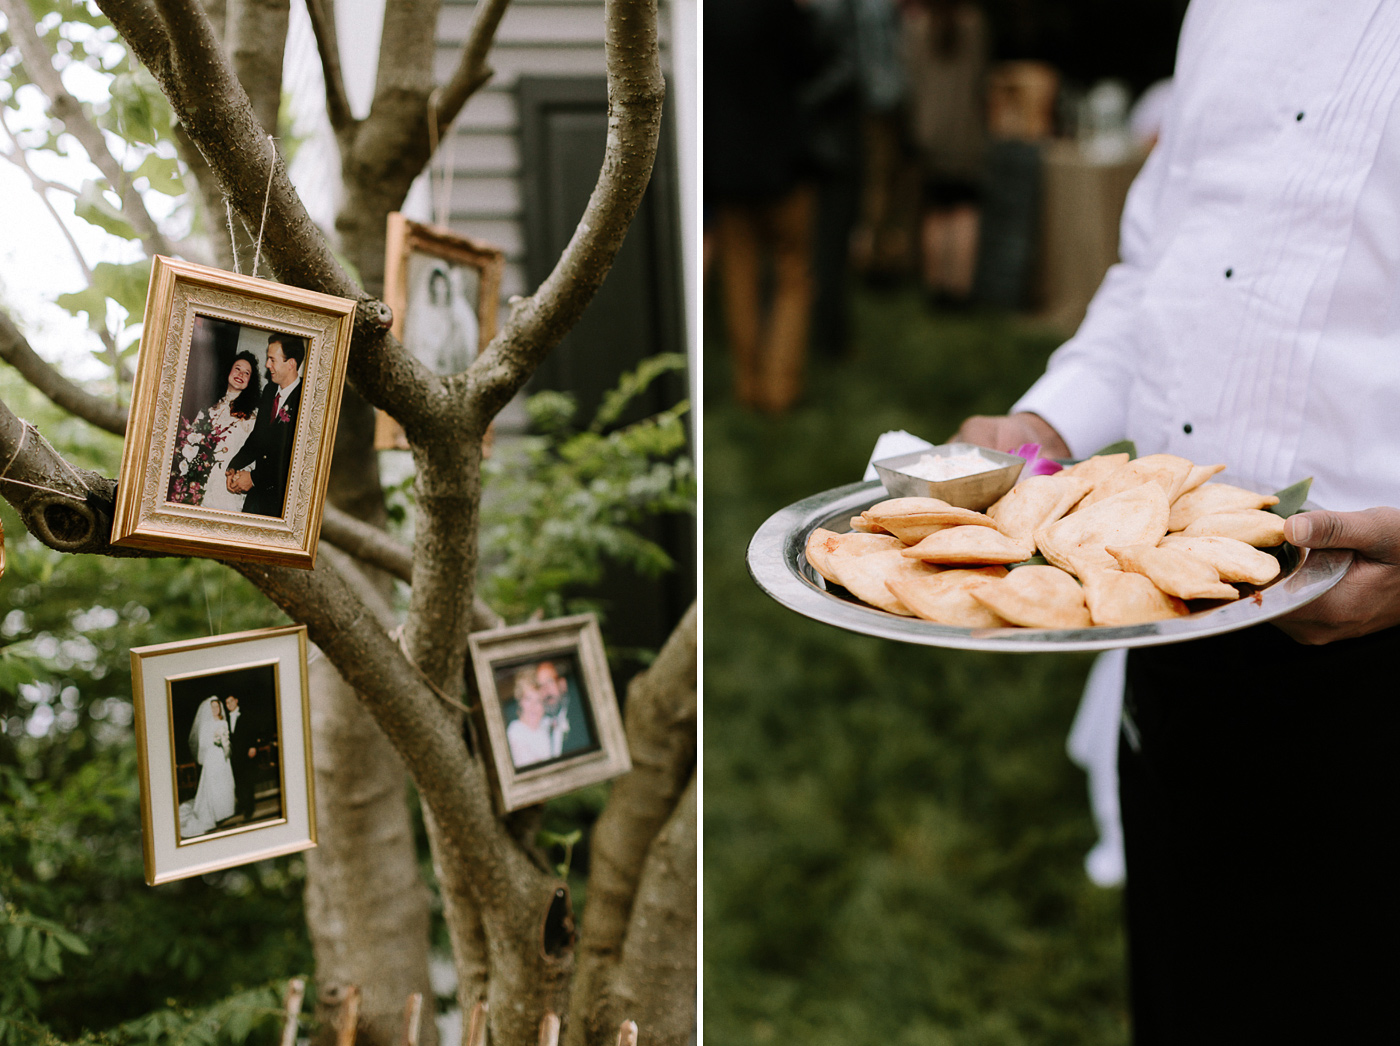 Parents wedding photos and appetizers